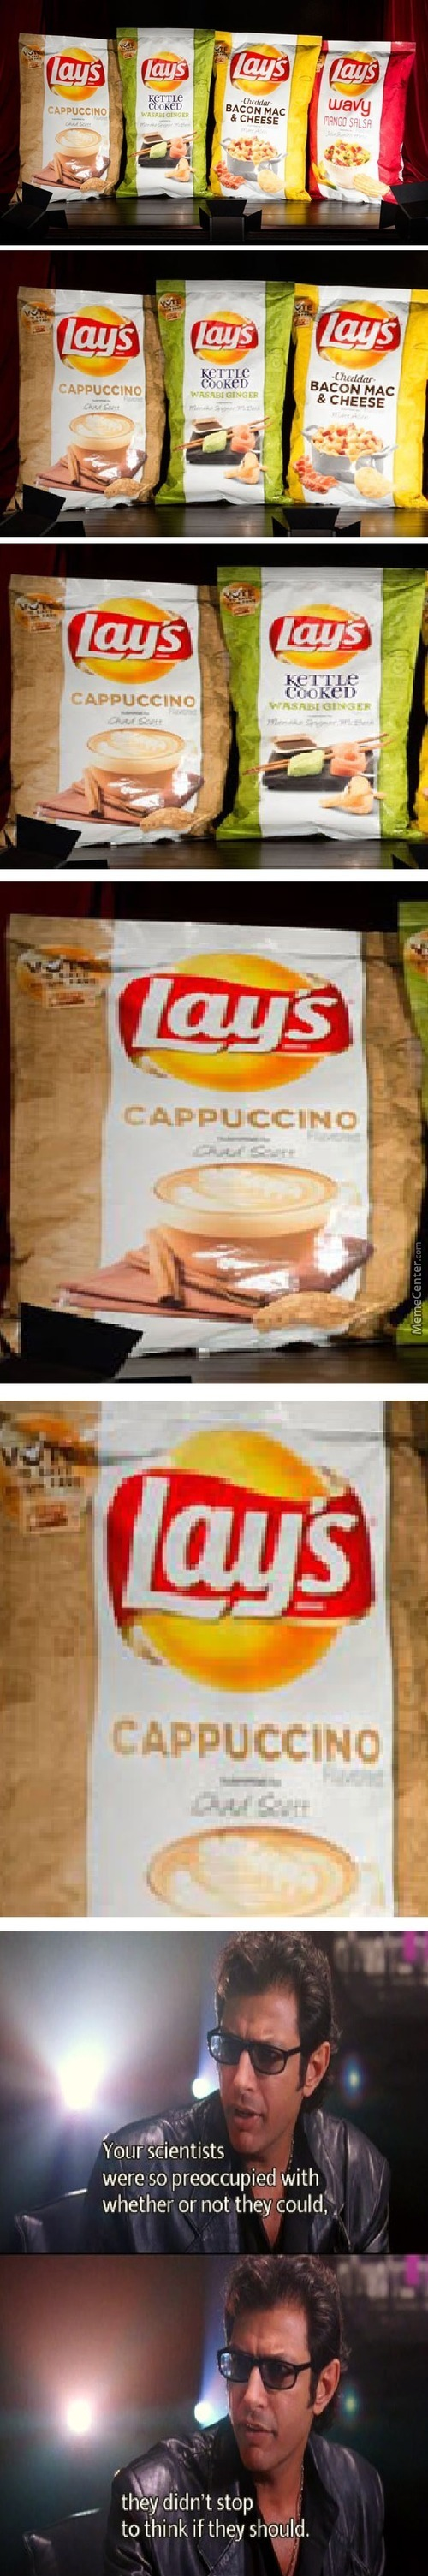 You Came Up With This Idea, Lays, And Before You Even Knew What You Had, You Packaged It, And Now You're Selling It, You're Gonna Sell It!